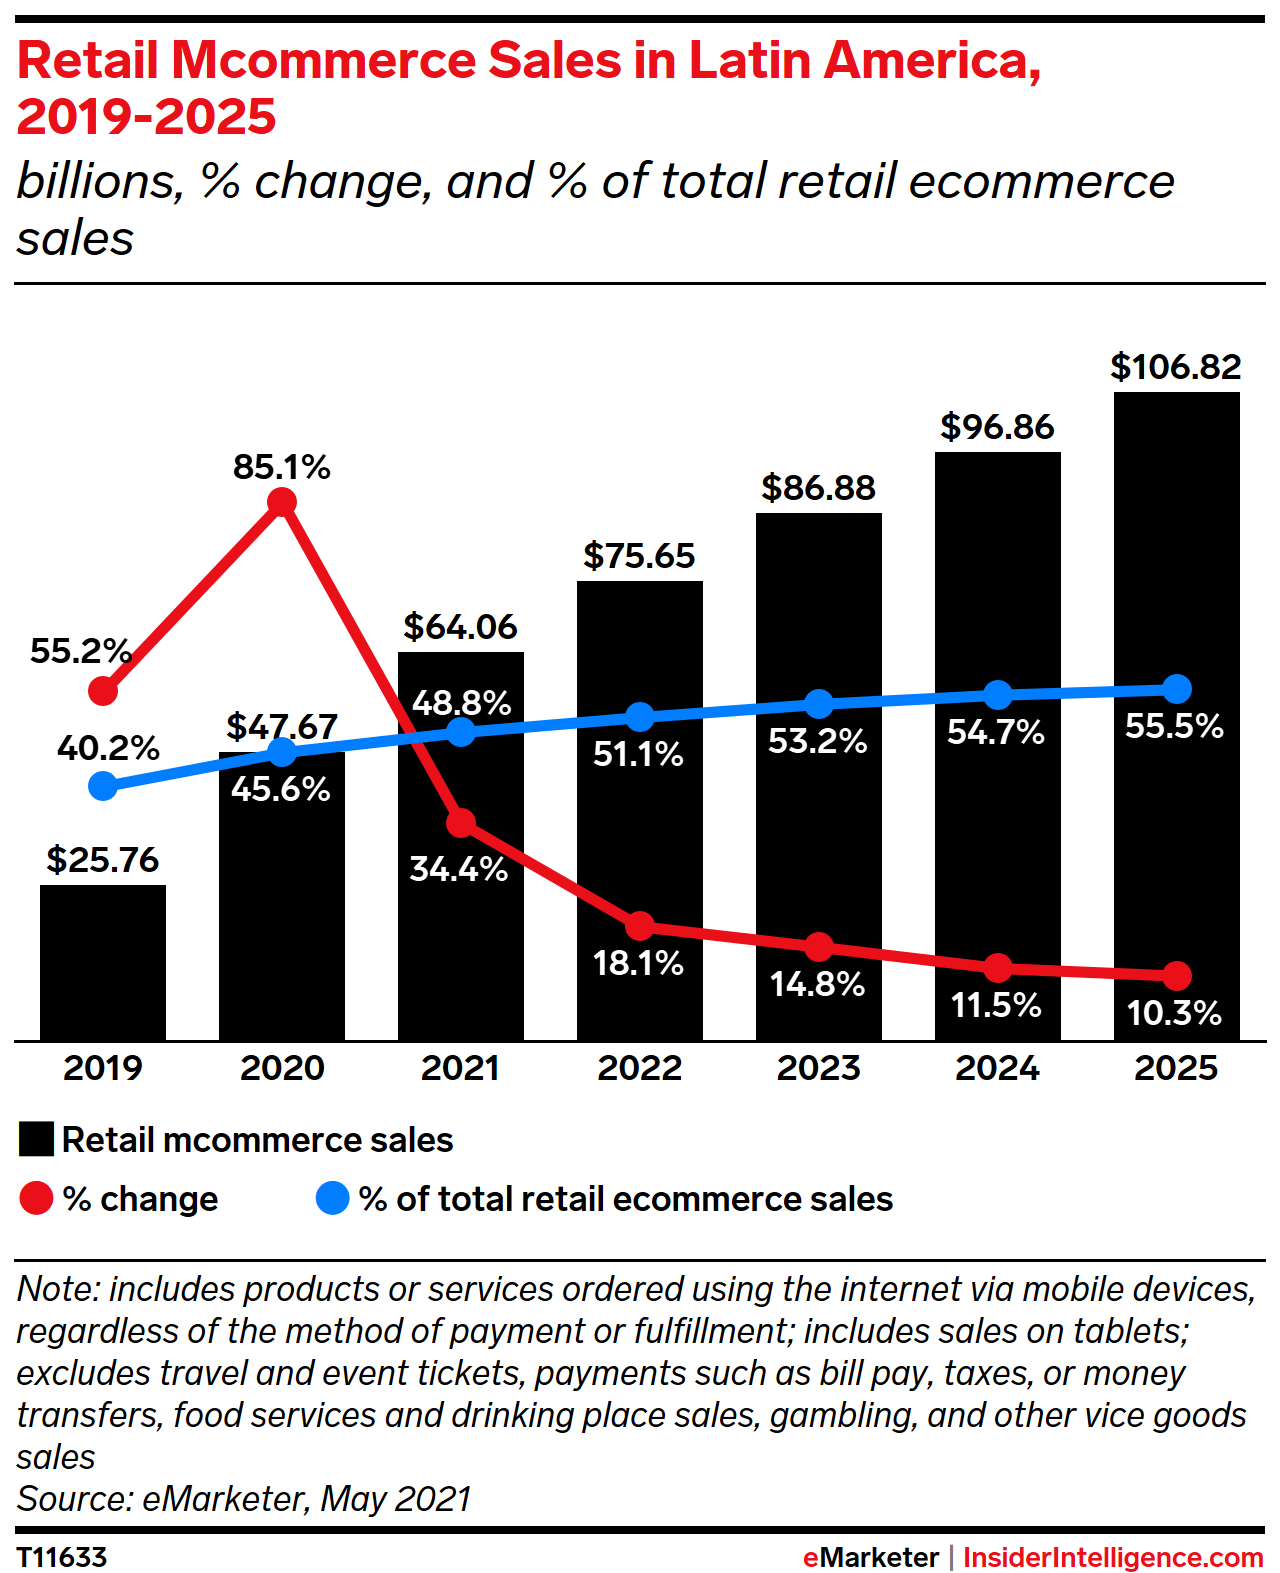 Retail Mcommerce Sales in Latin America, 2019-2025 (billions, % change, and % of retail ecommerce sales)